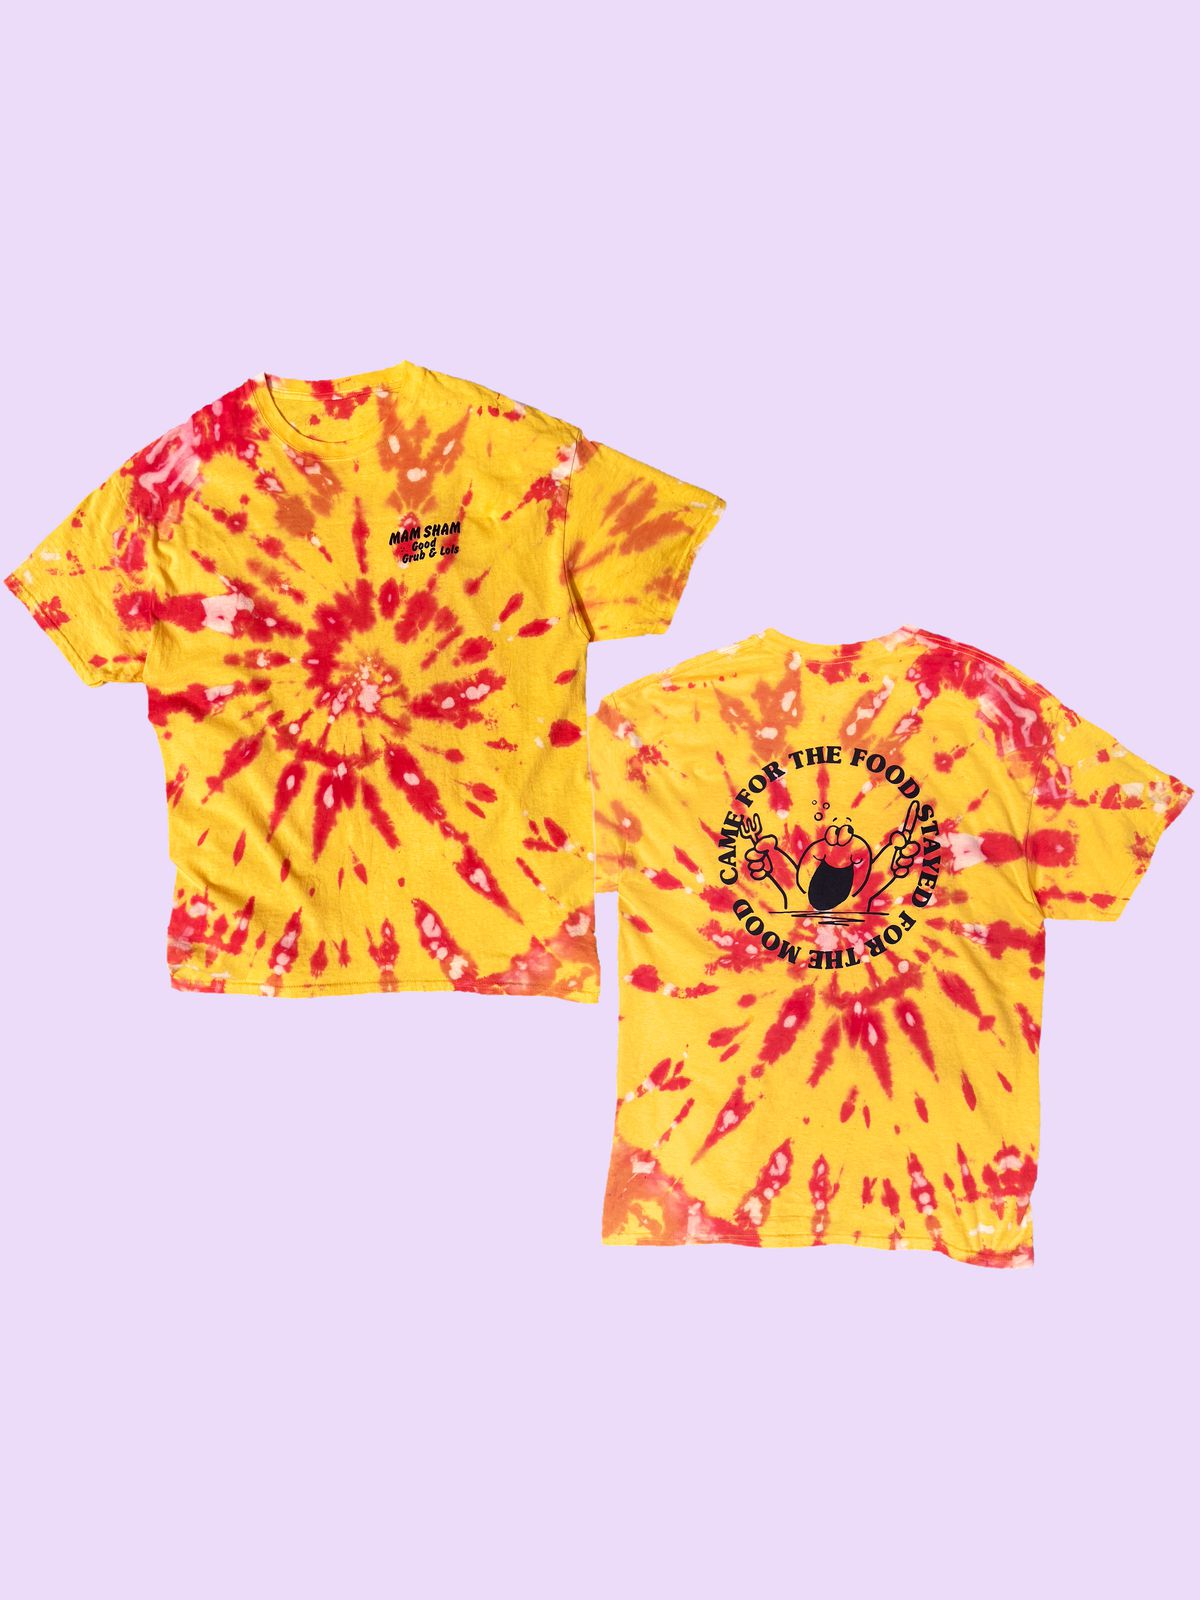 This tie dye t-shirt from Mam Sham is some of the best restaurant merch to buy in London